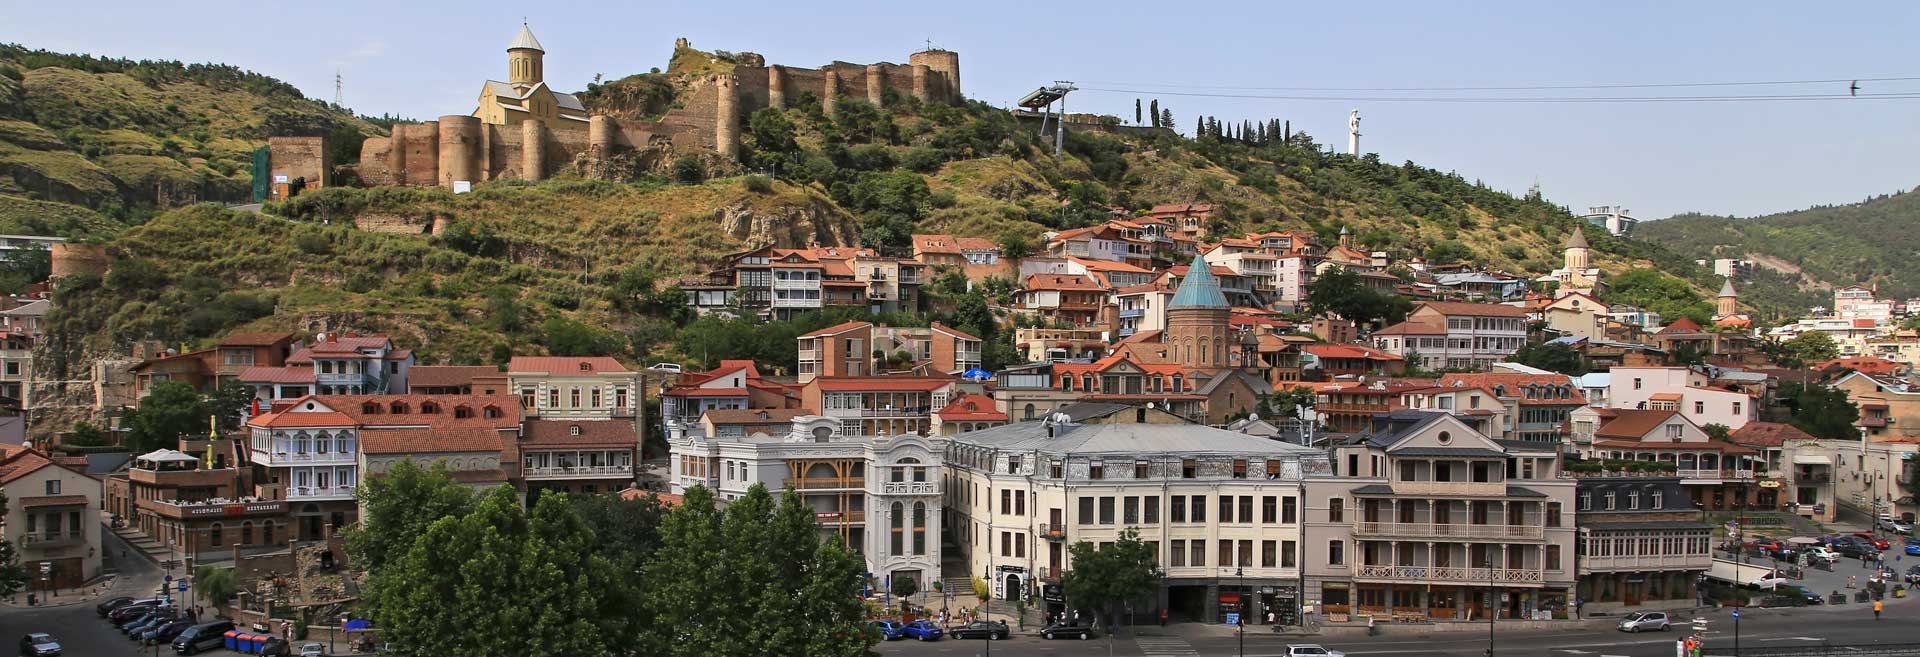 Tbilisi, Georgia. Photo credit: Ann Schneider